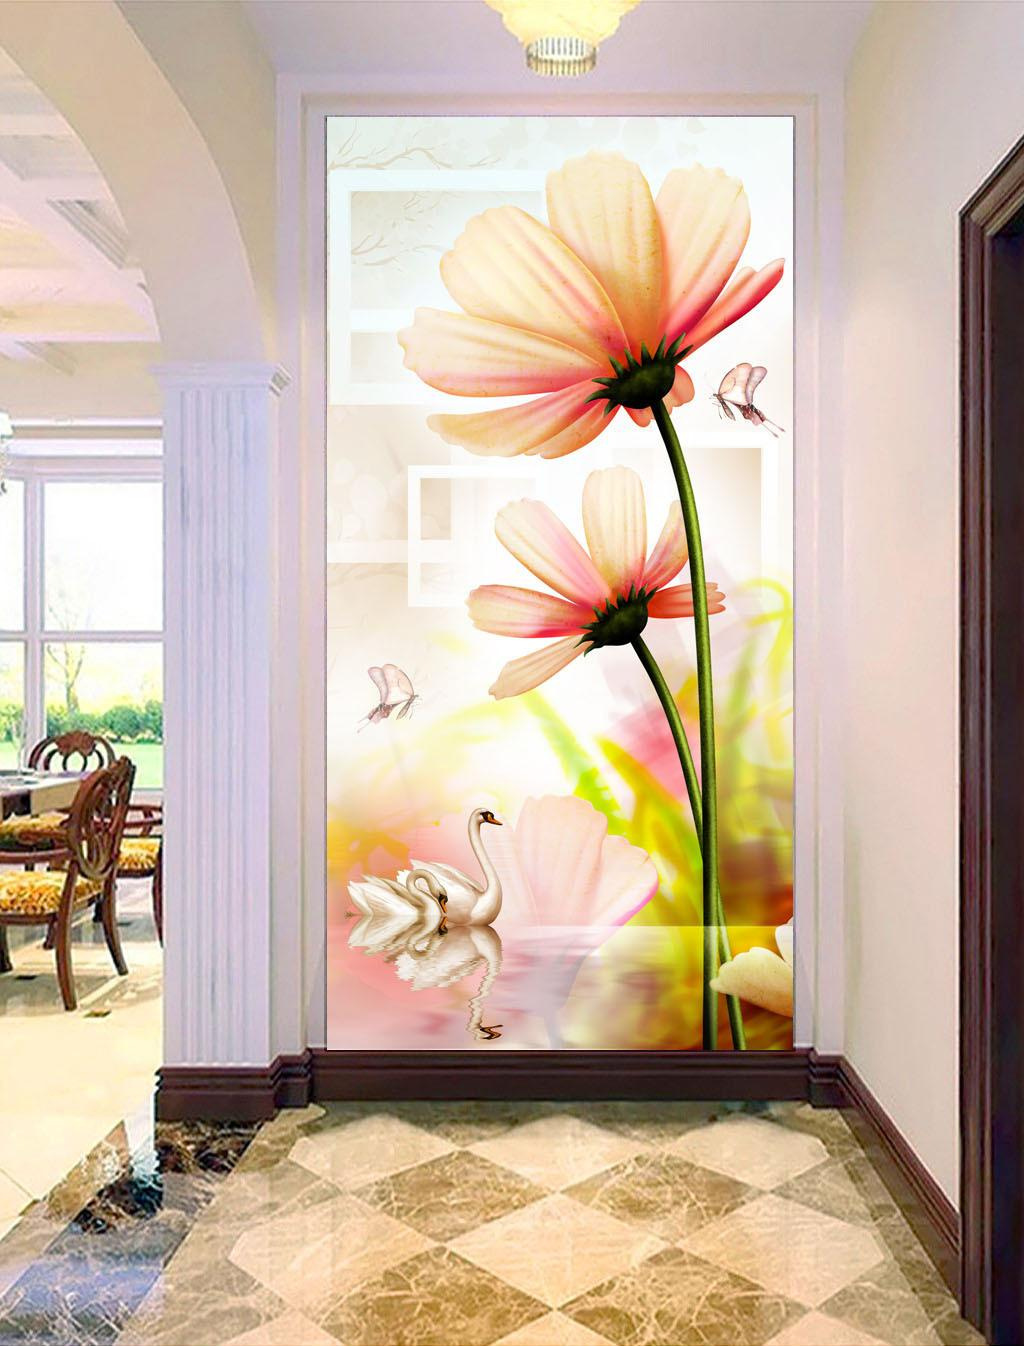 Custom Retail Fantasy Swan Lake Flower Porch Beautiful - Open Place Wallpaper For Mobile , HD Wallpaper & Backgrounds